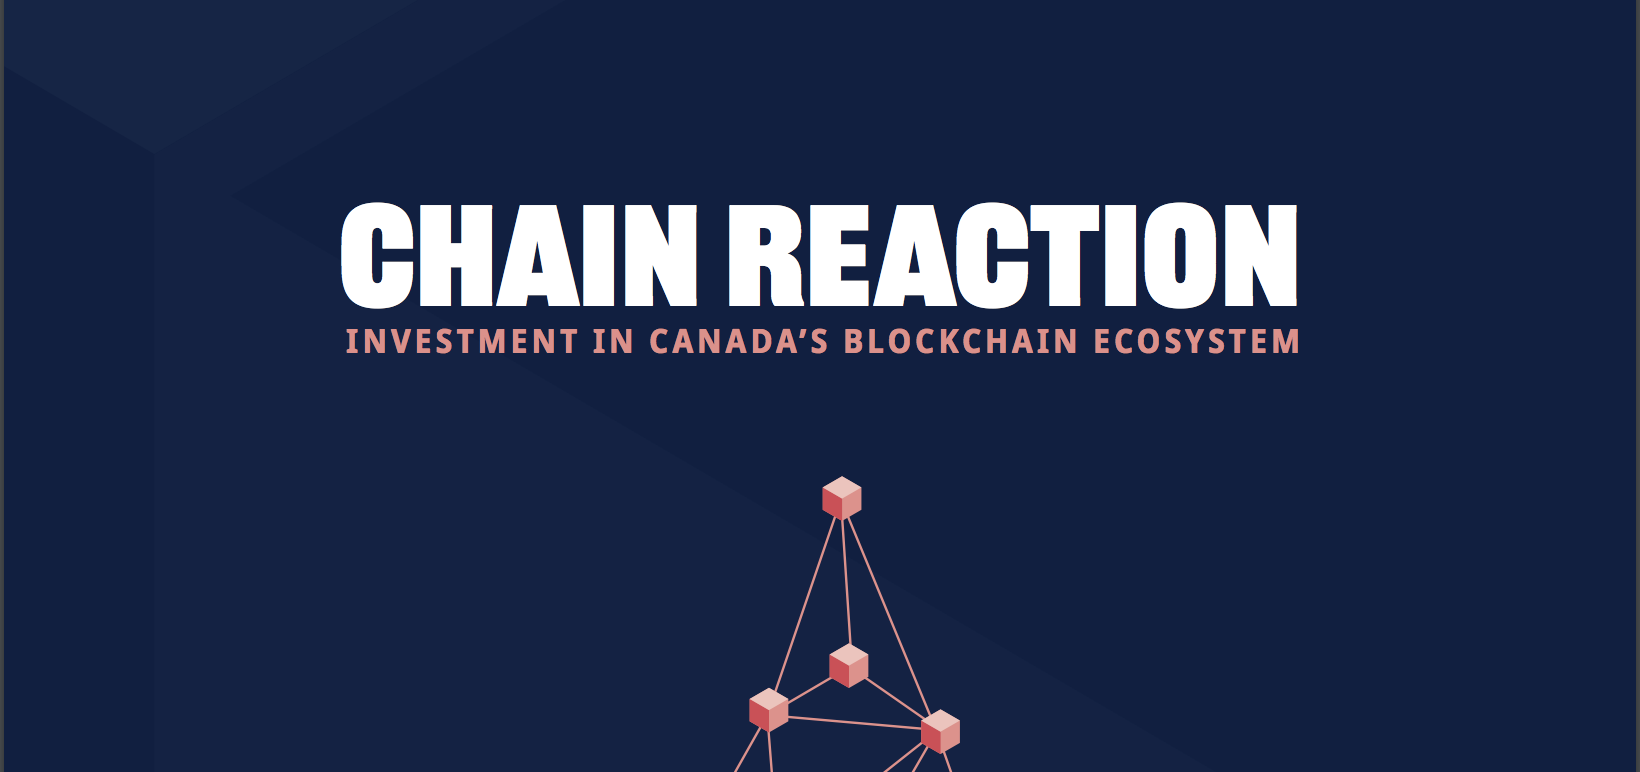 Accelerating Blockchain Adoption in Canada Creates New Opportunities for Foreign Direct Investment: New ICTC Study